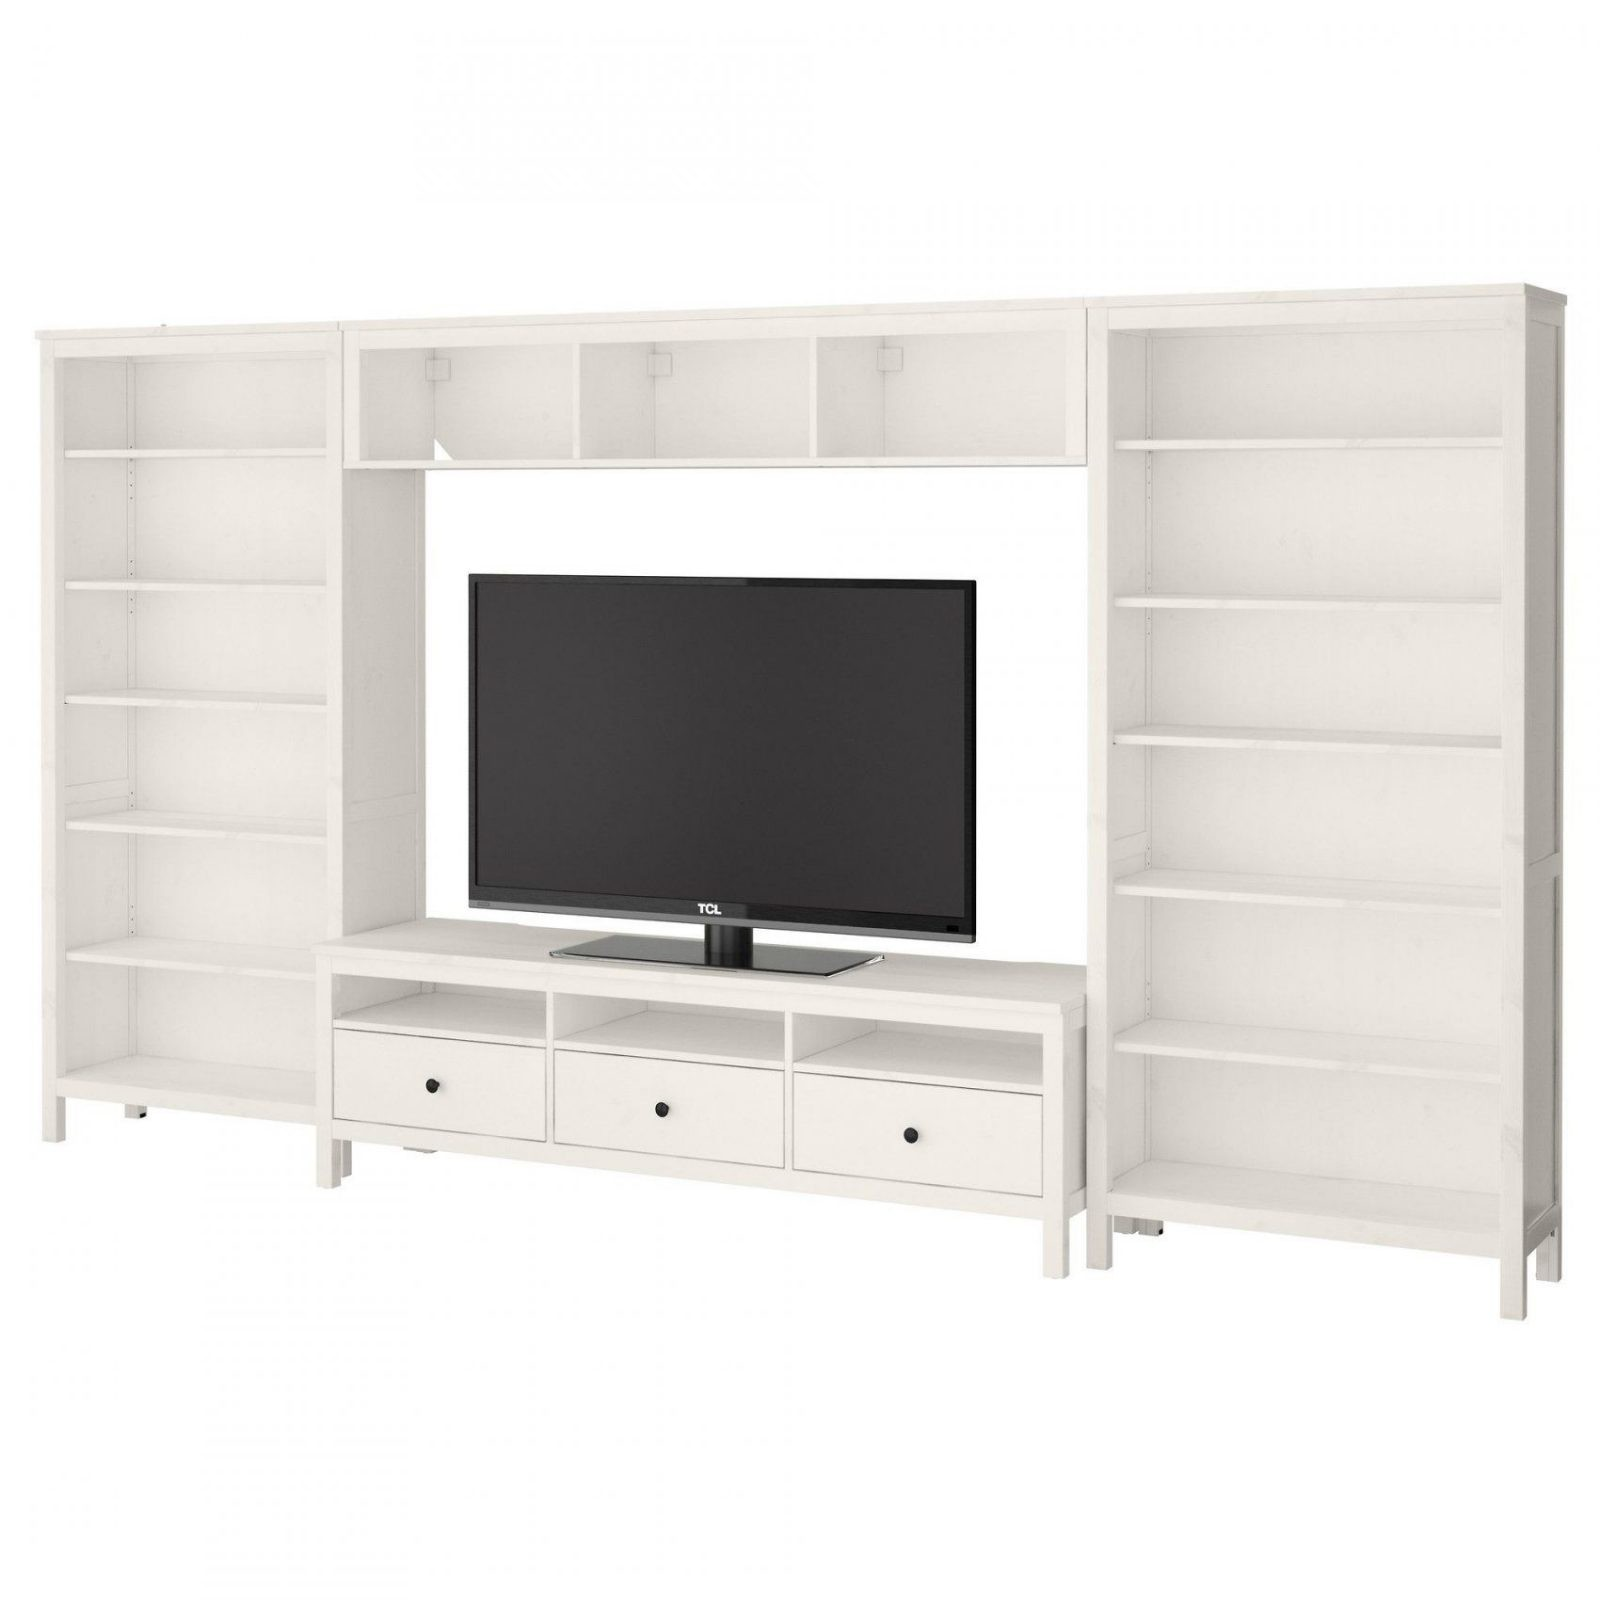 ikea schrank 2 meter hemnes schrank schrank nach ma tv schrank ikea von schrank nach ma ikea. Black Bedroom Furniture Sets. Home Design Ideas